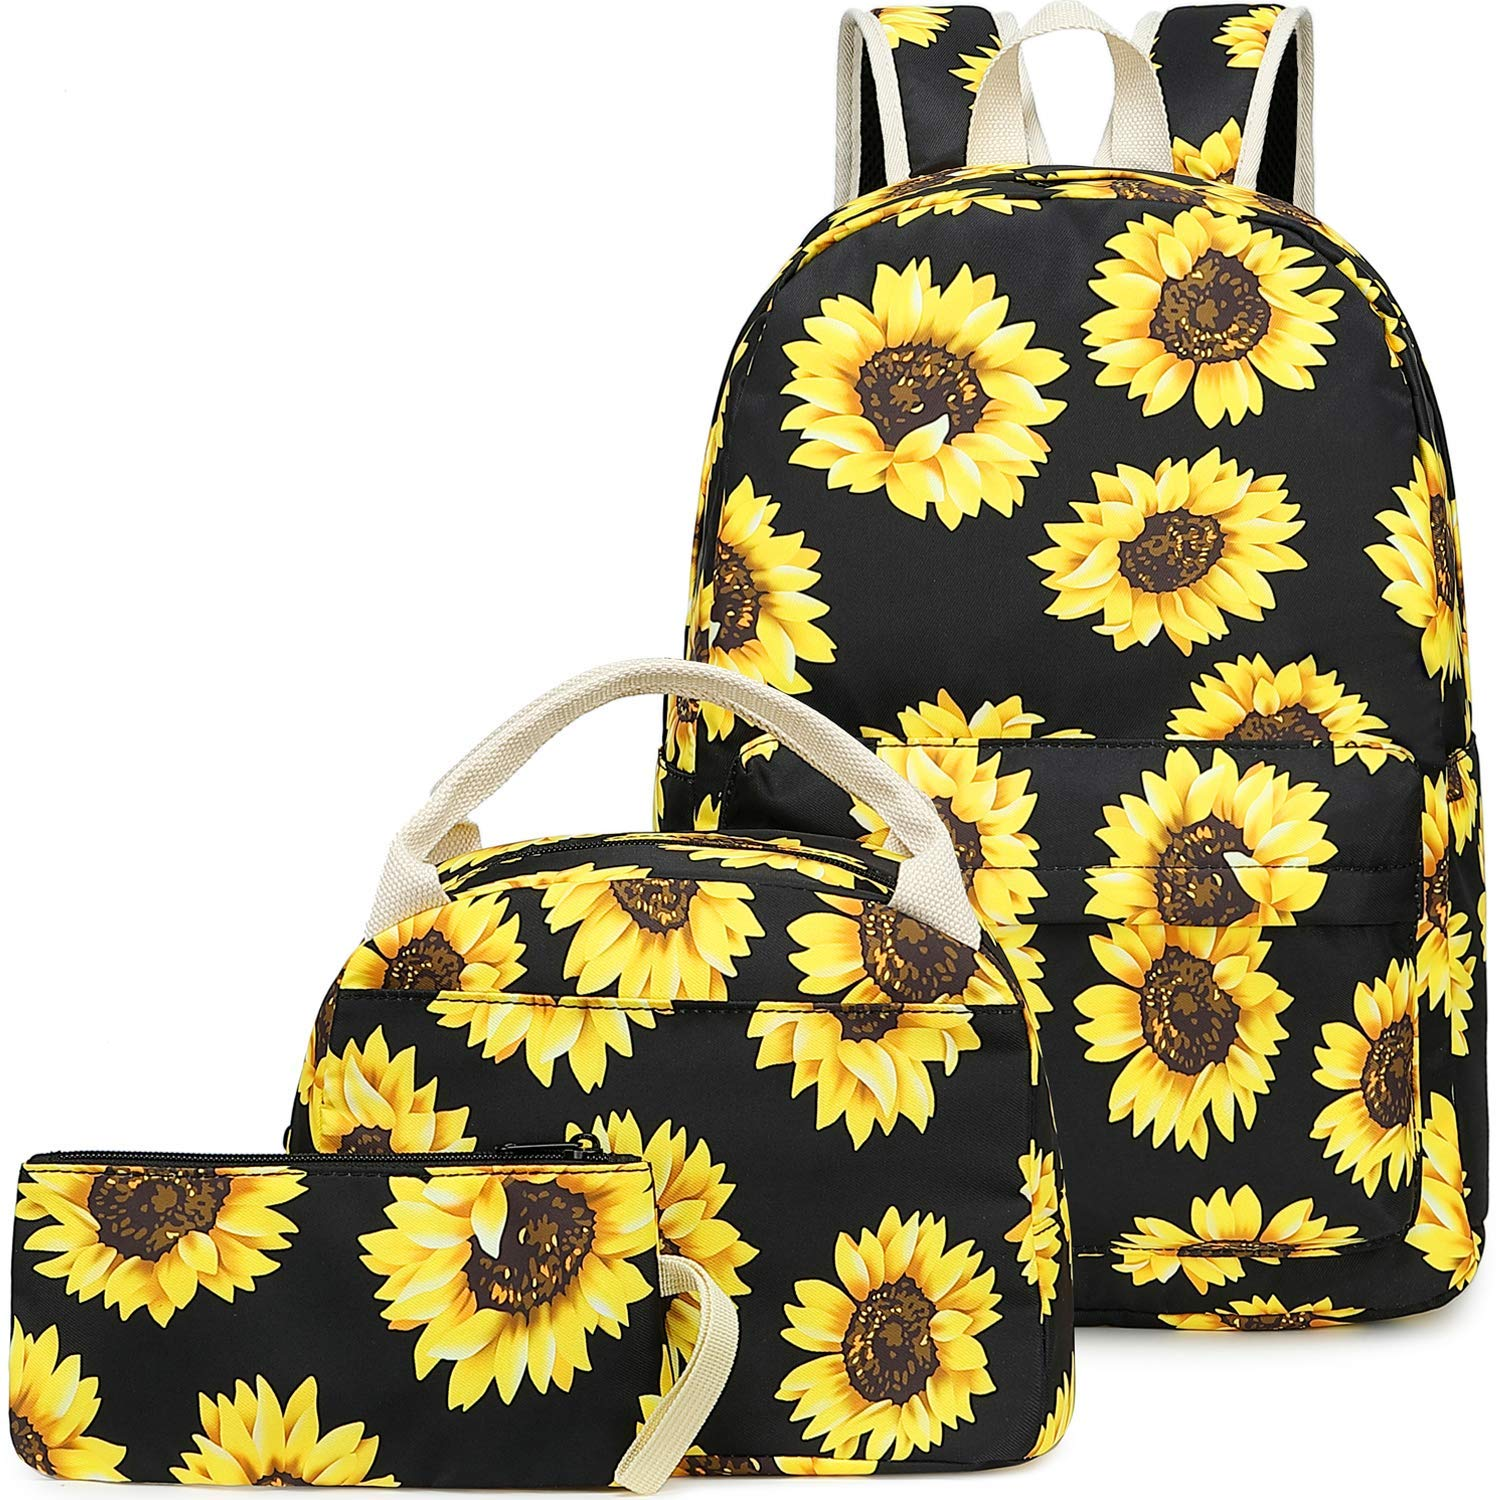 Girls School Backpack Bags Teens Bookbag with Lunch Box and Pencil Case, Sunflower